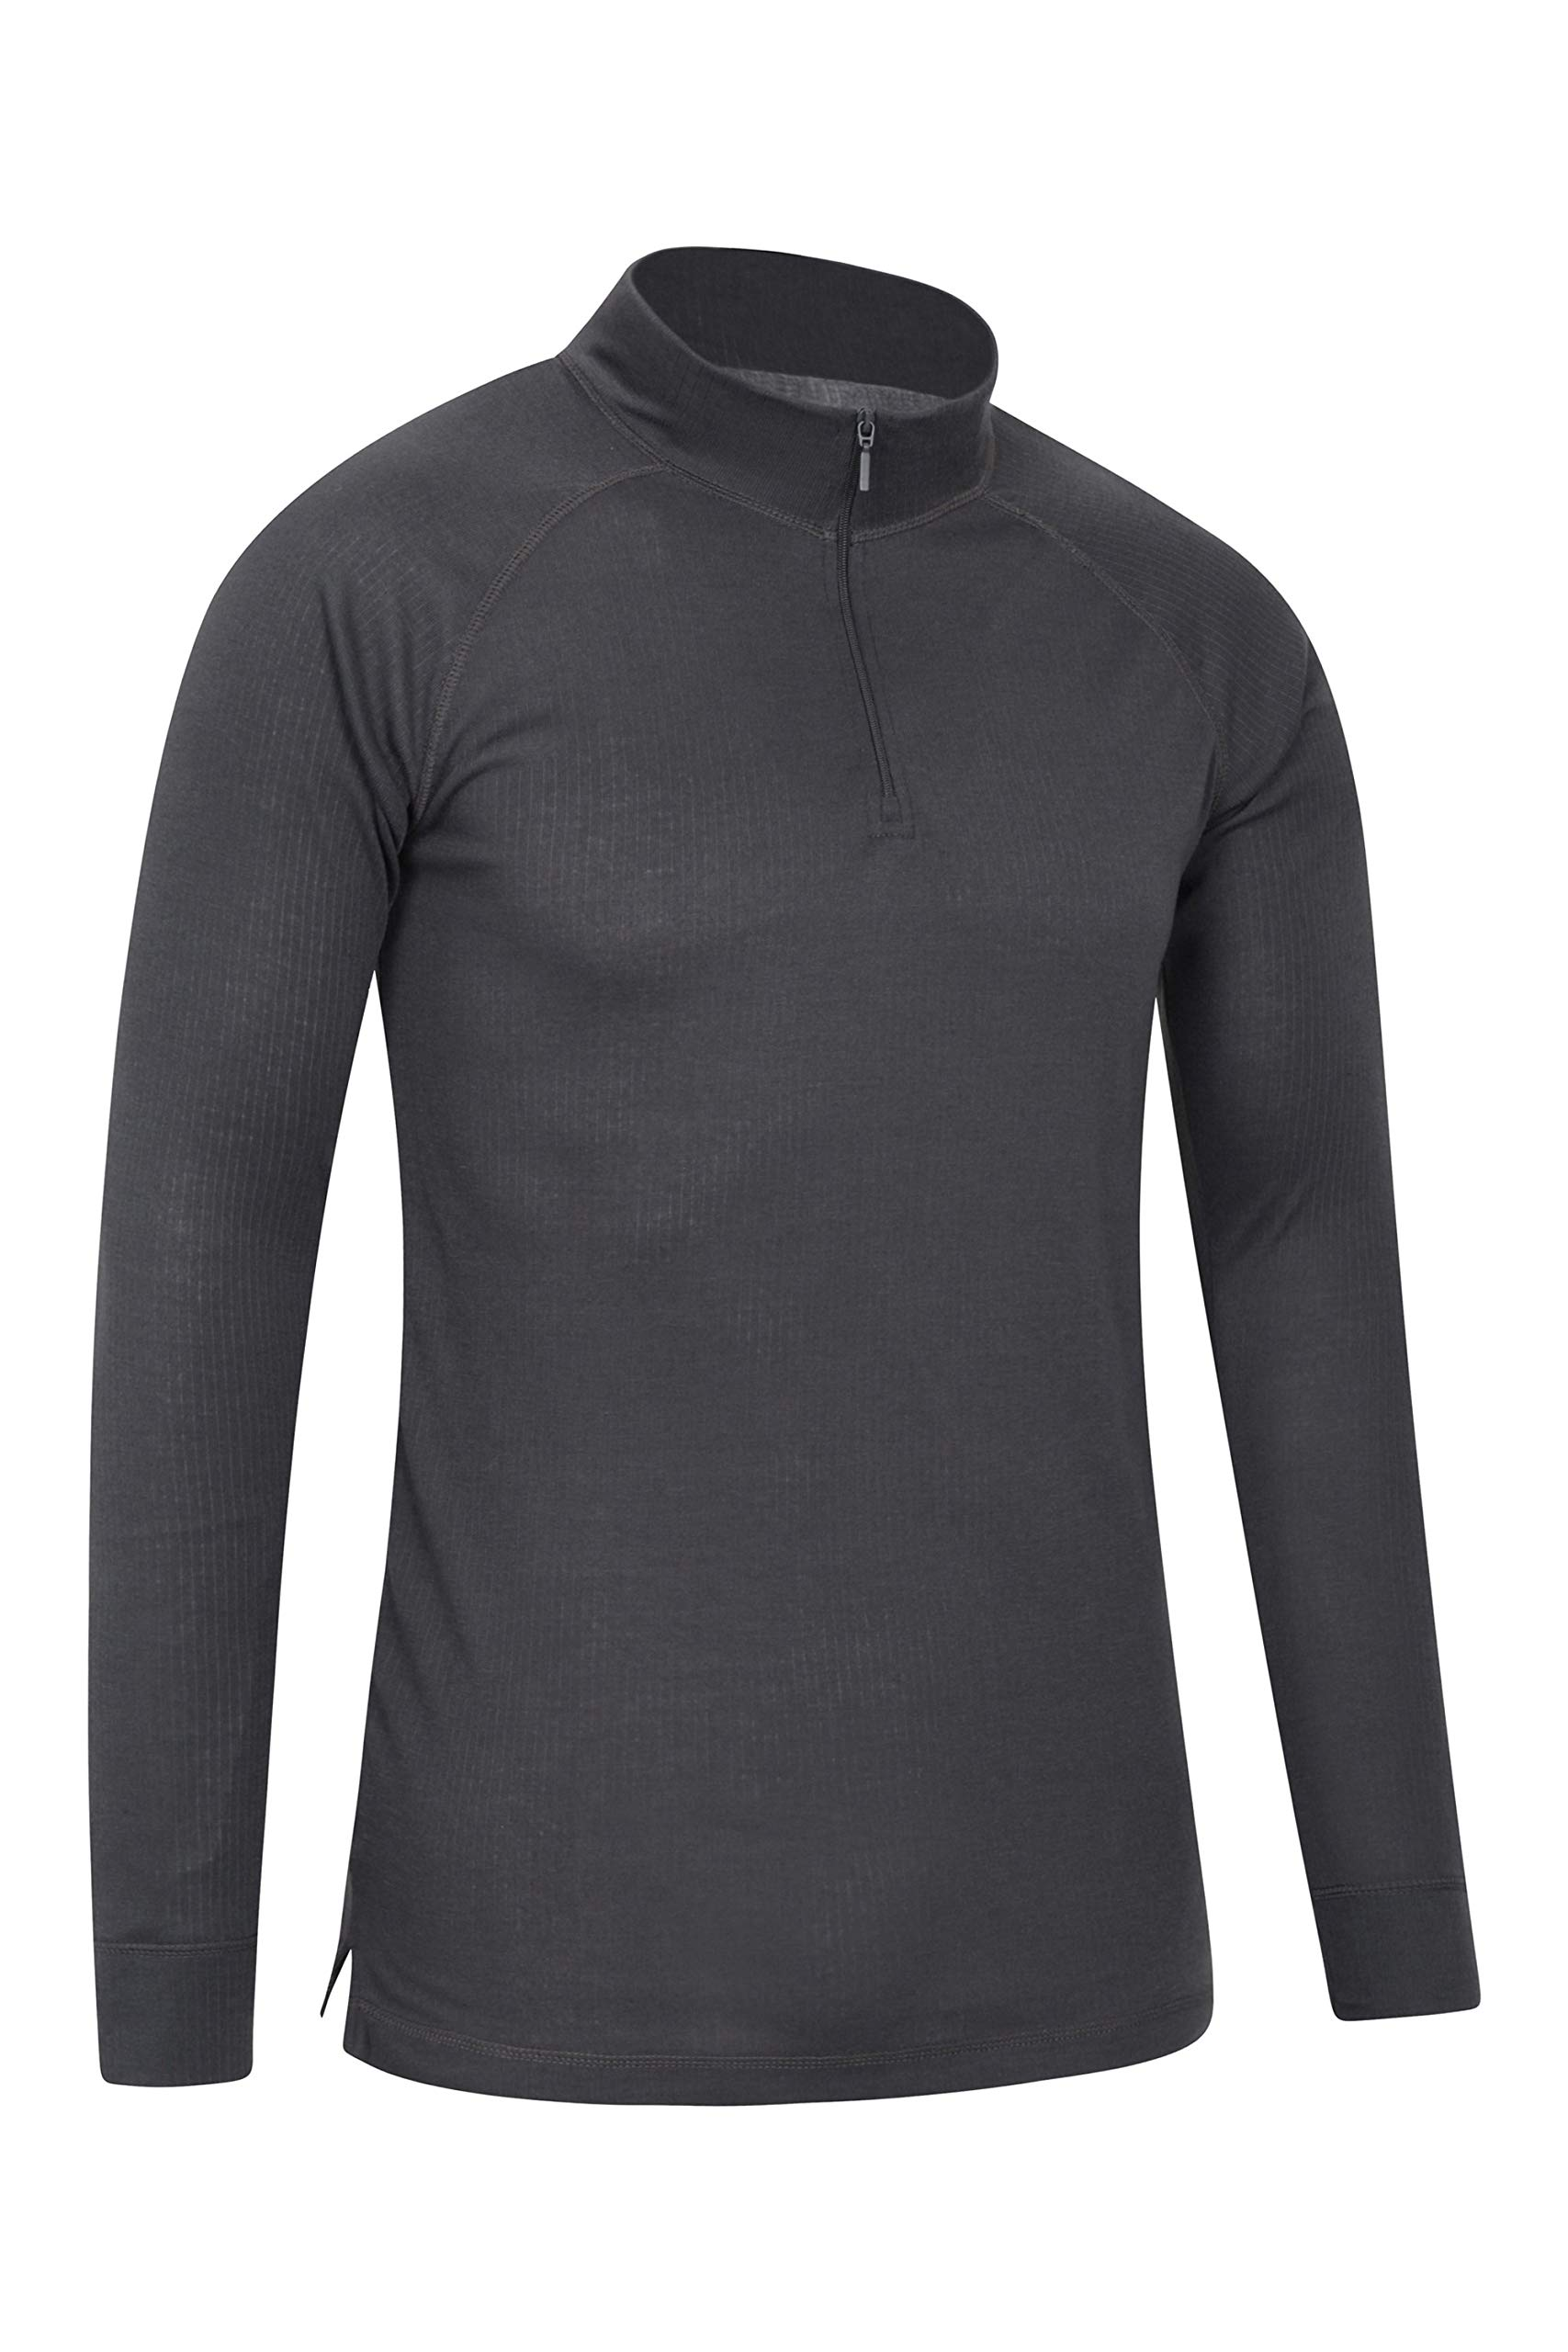 Mountain Warehouse Talus Mens Thermal Baselayer Top - Long Sleeve Sweater, Zip Neck, Quick Drying Pullover, Breathable, Lightweight - Great for Winter, Travelling 2